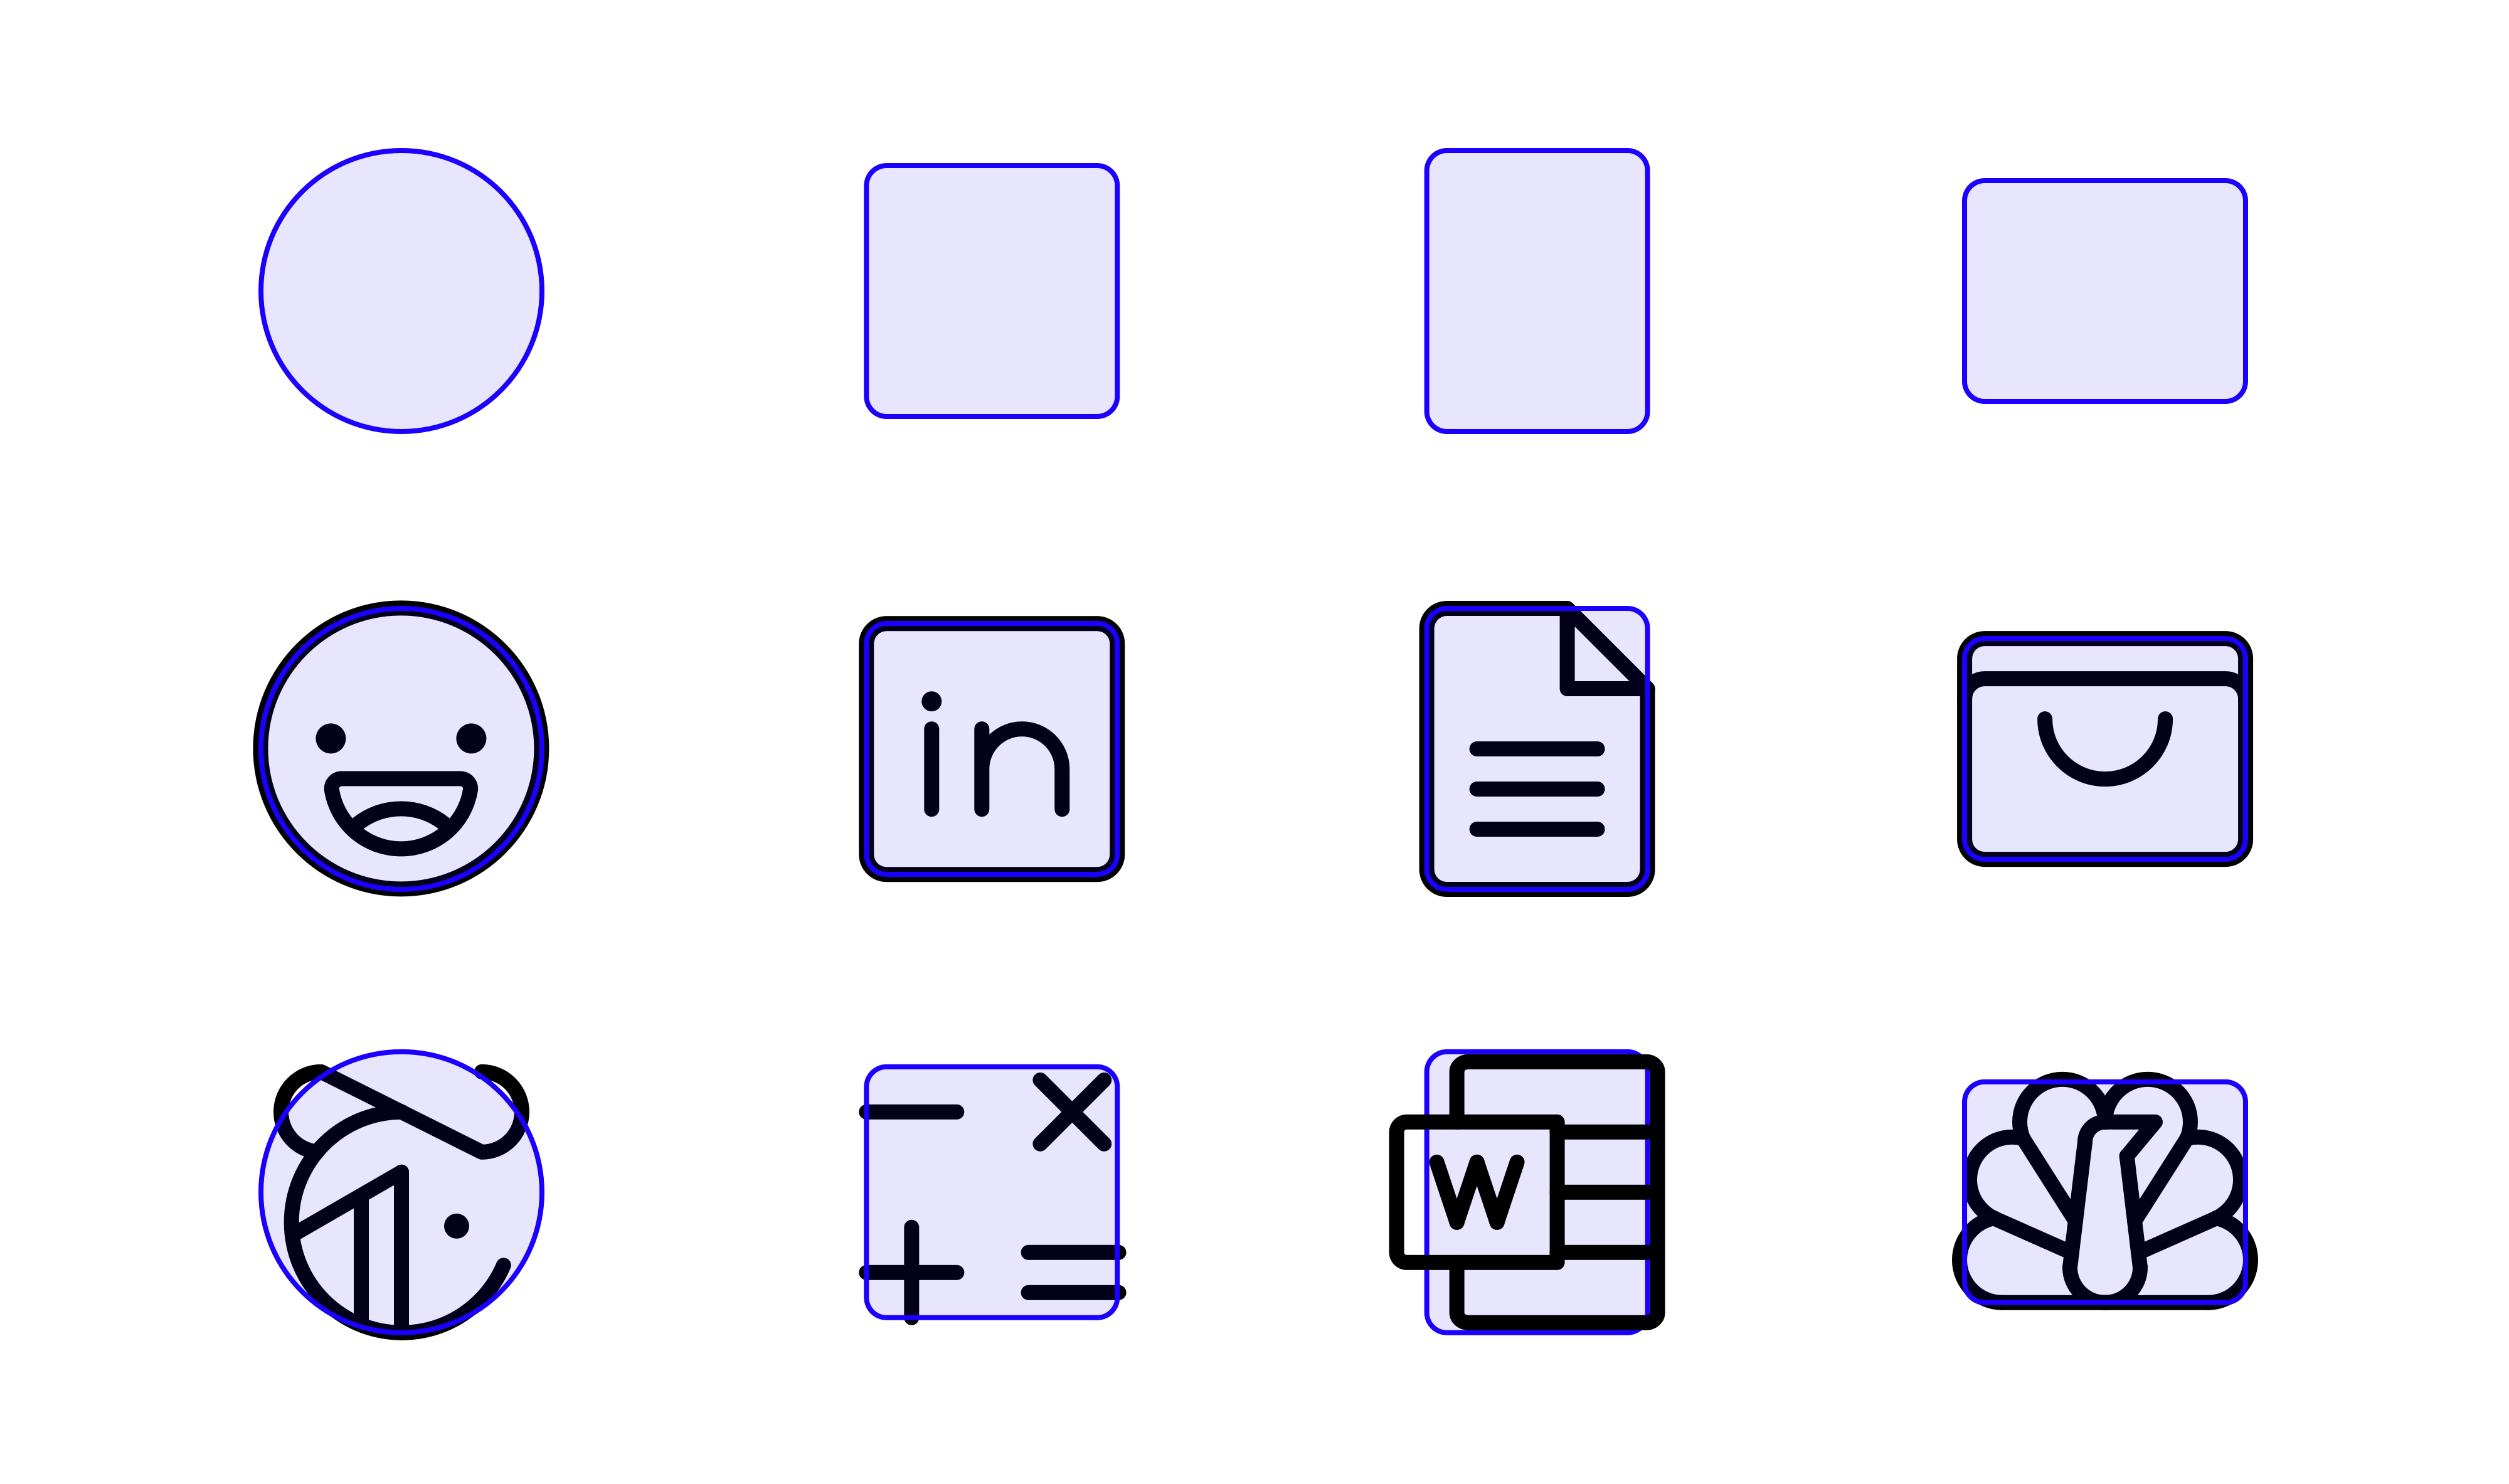 Phosphor keyshapes and example icons